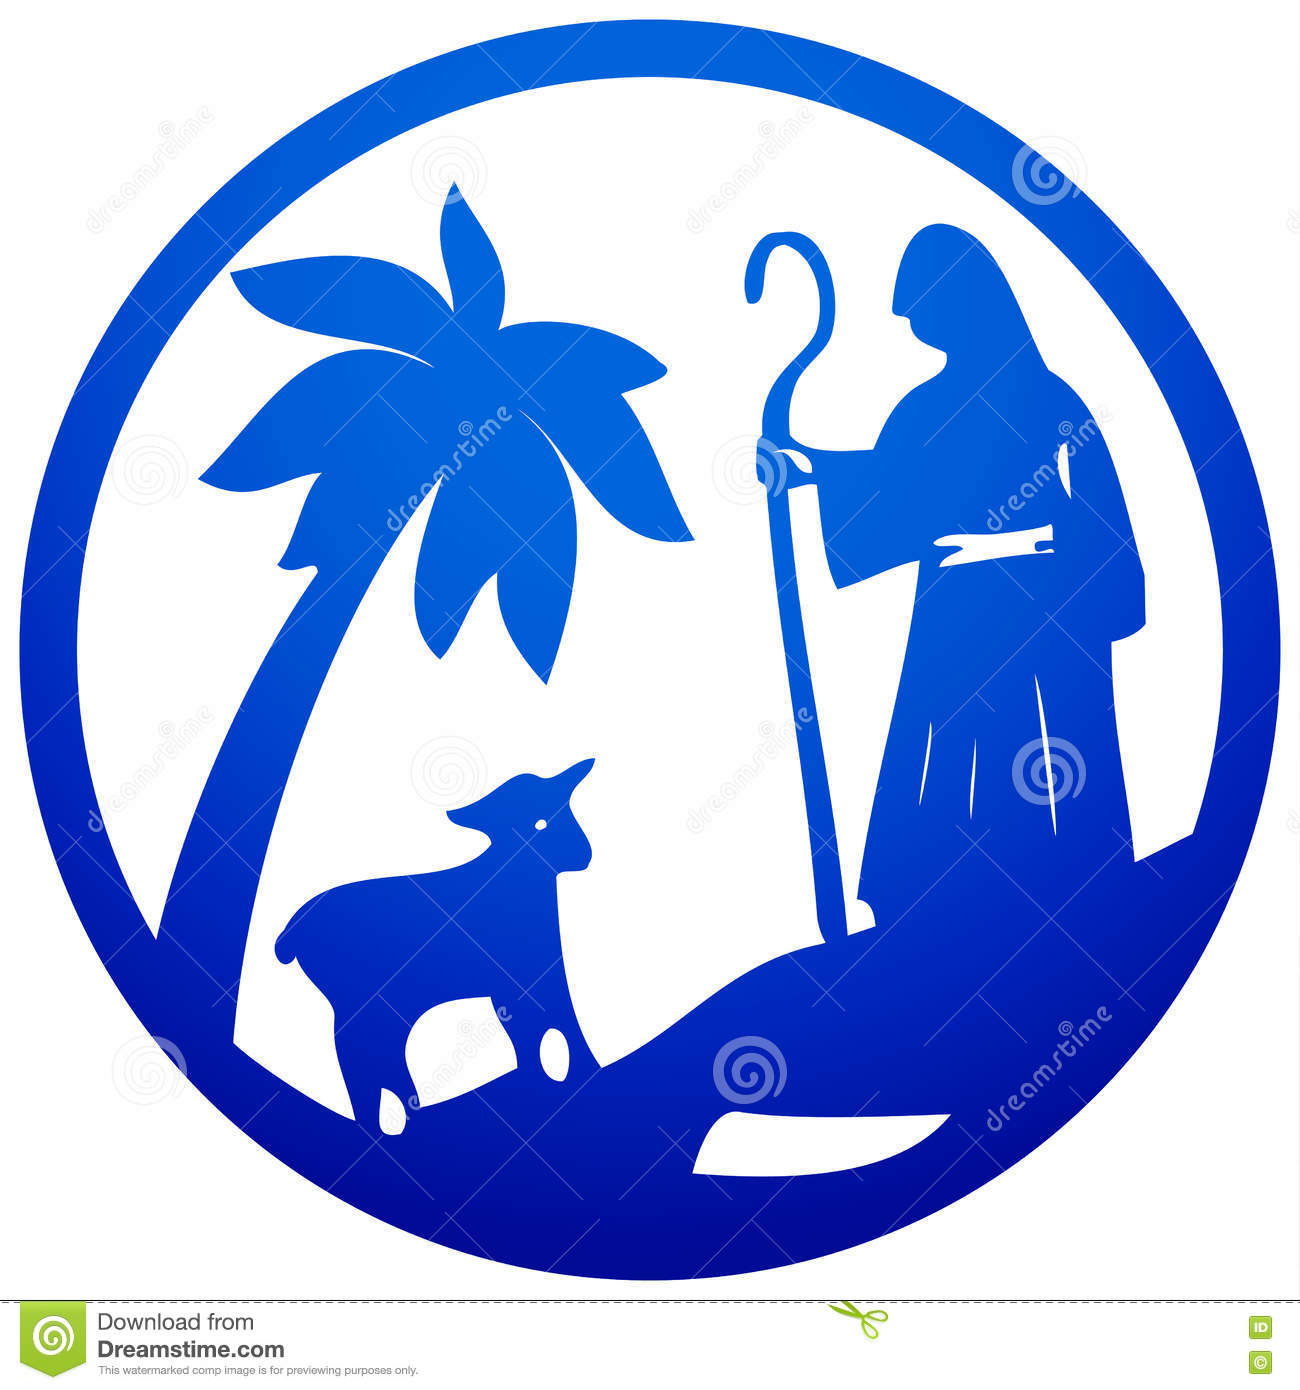 Shepherd Gold On Blue Silhouette Ornament: Benediction Cartoons, Illustrations & Vector Stock Images